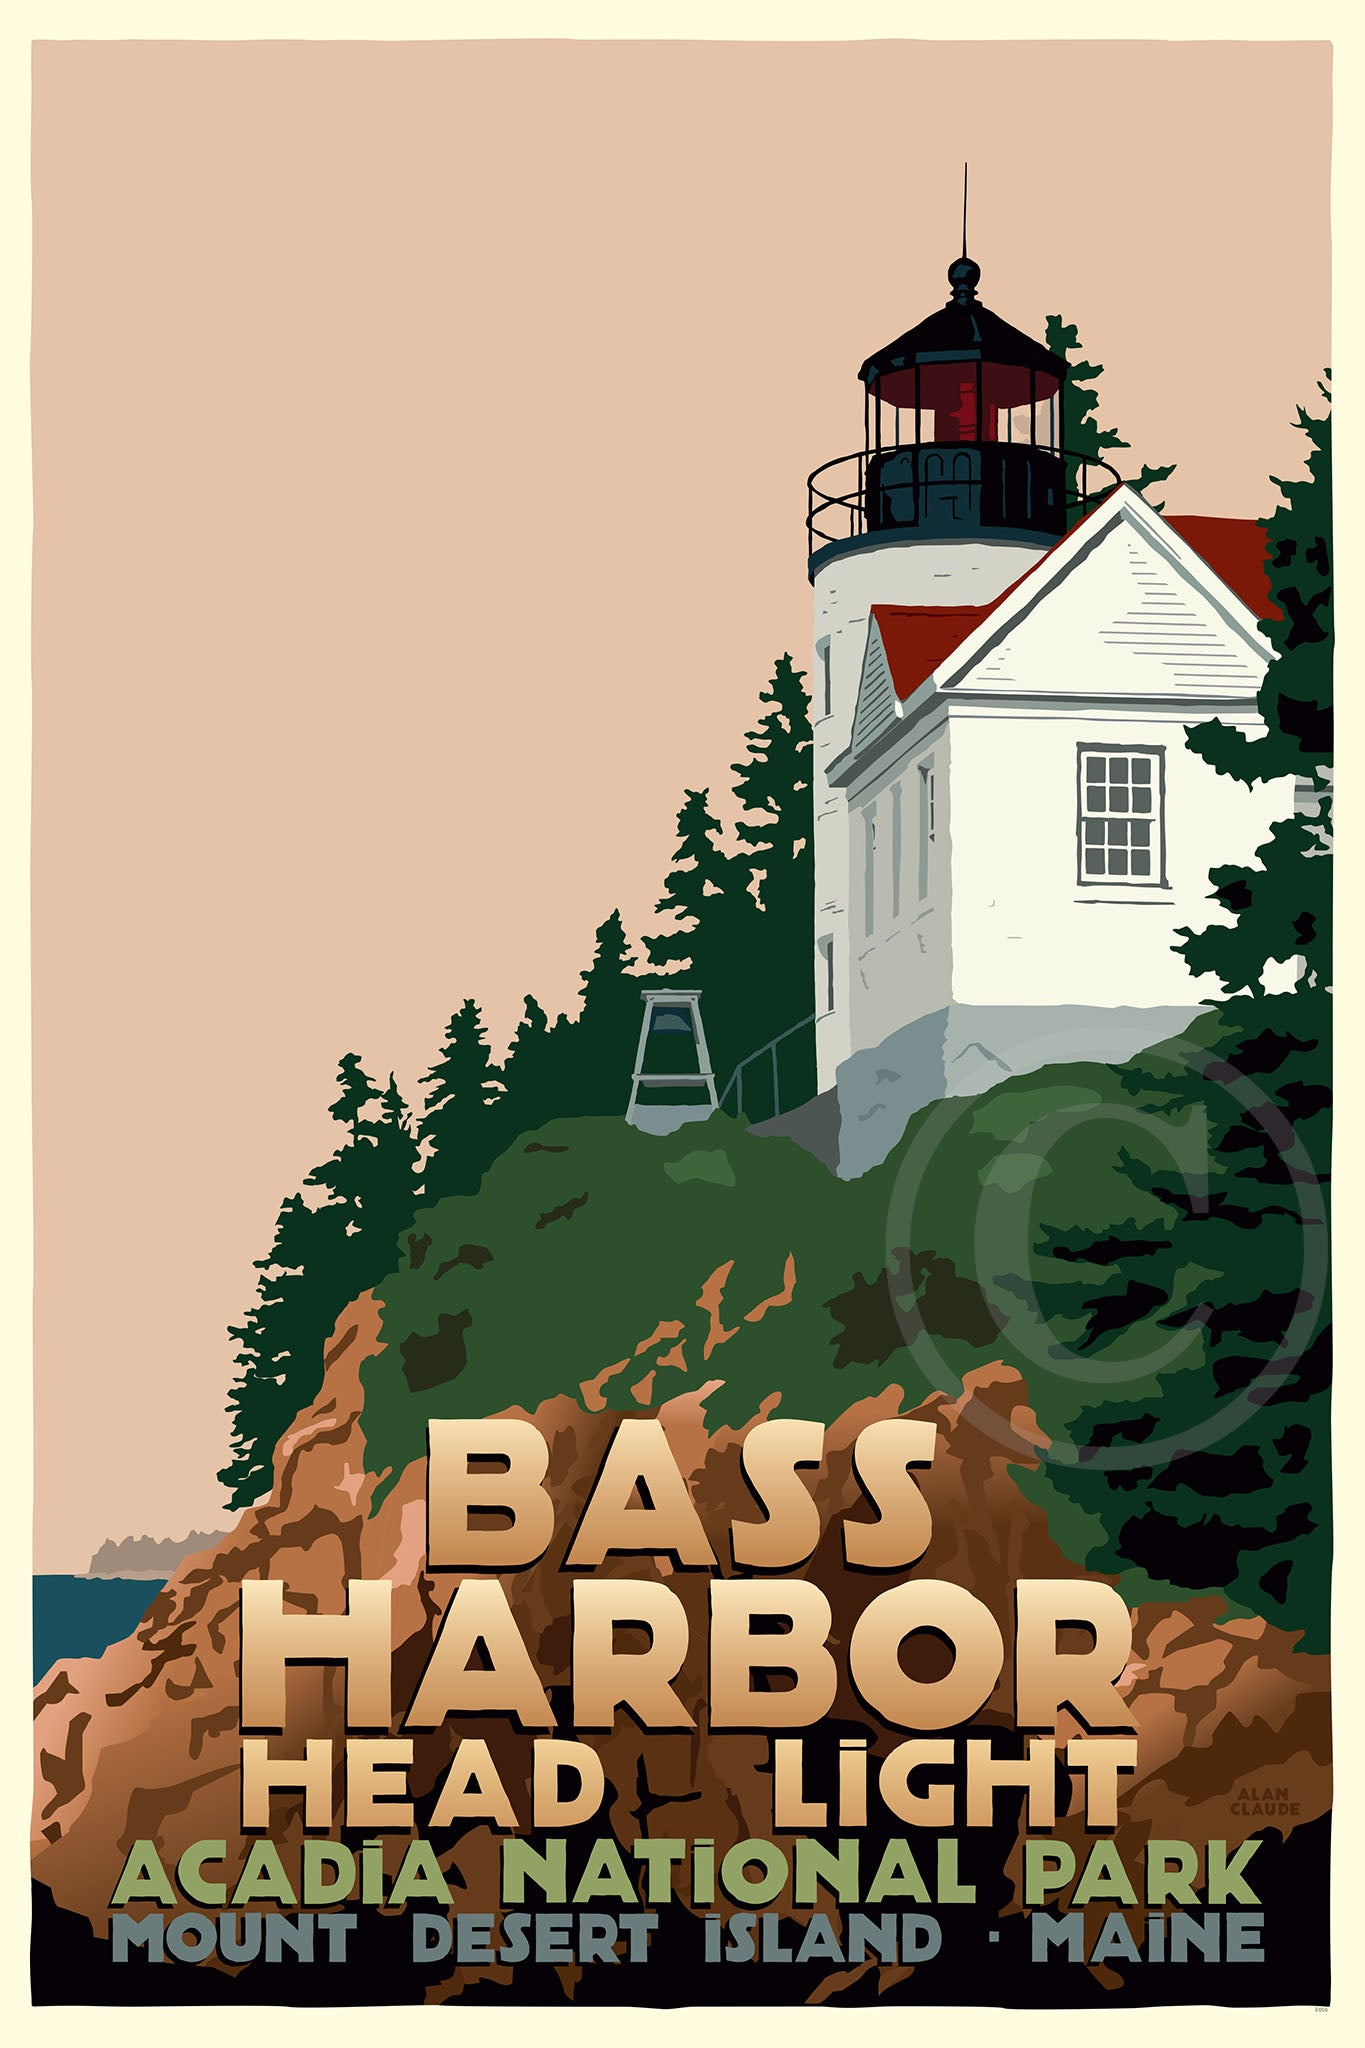 "Bass Harbor Head Light Art Print 24"" x 36"" Travel Poster - Maine"